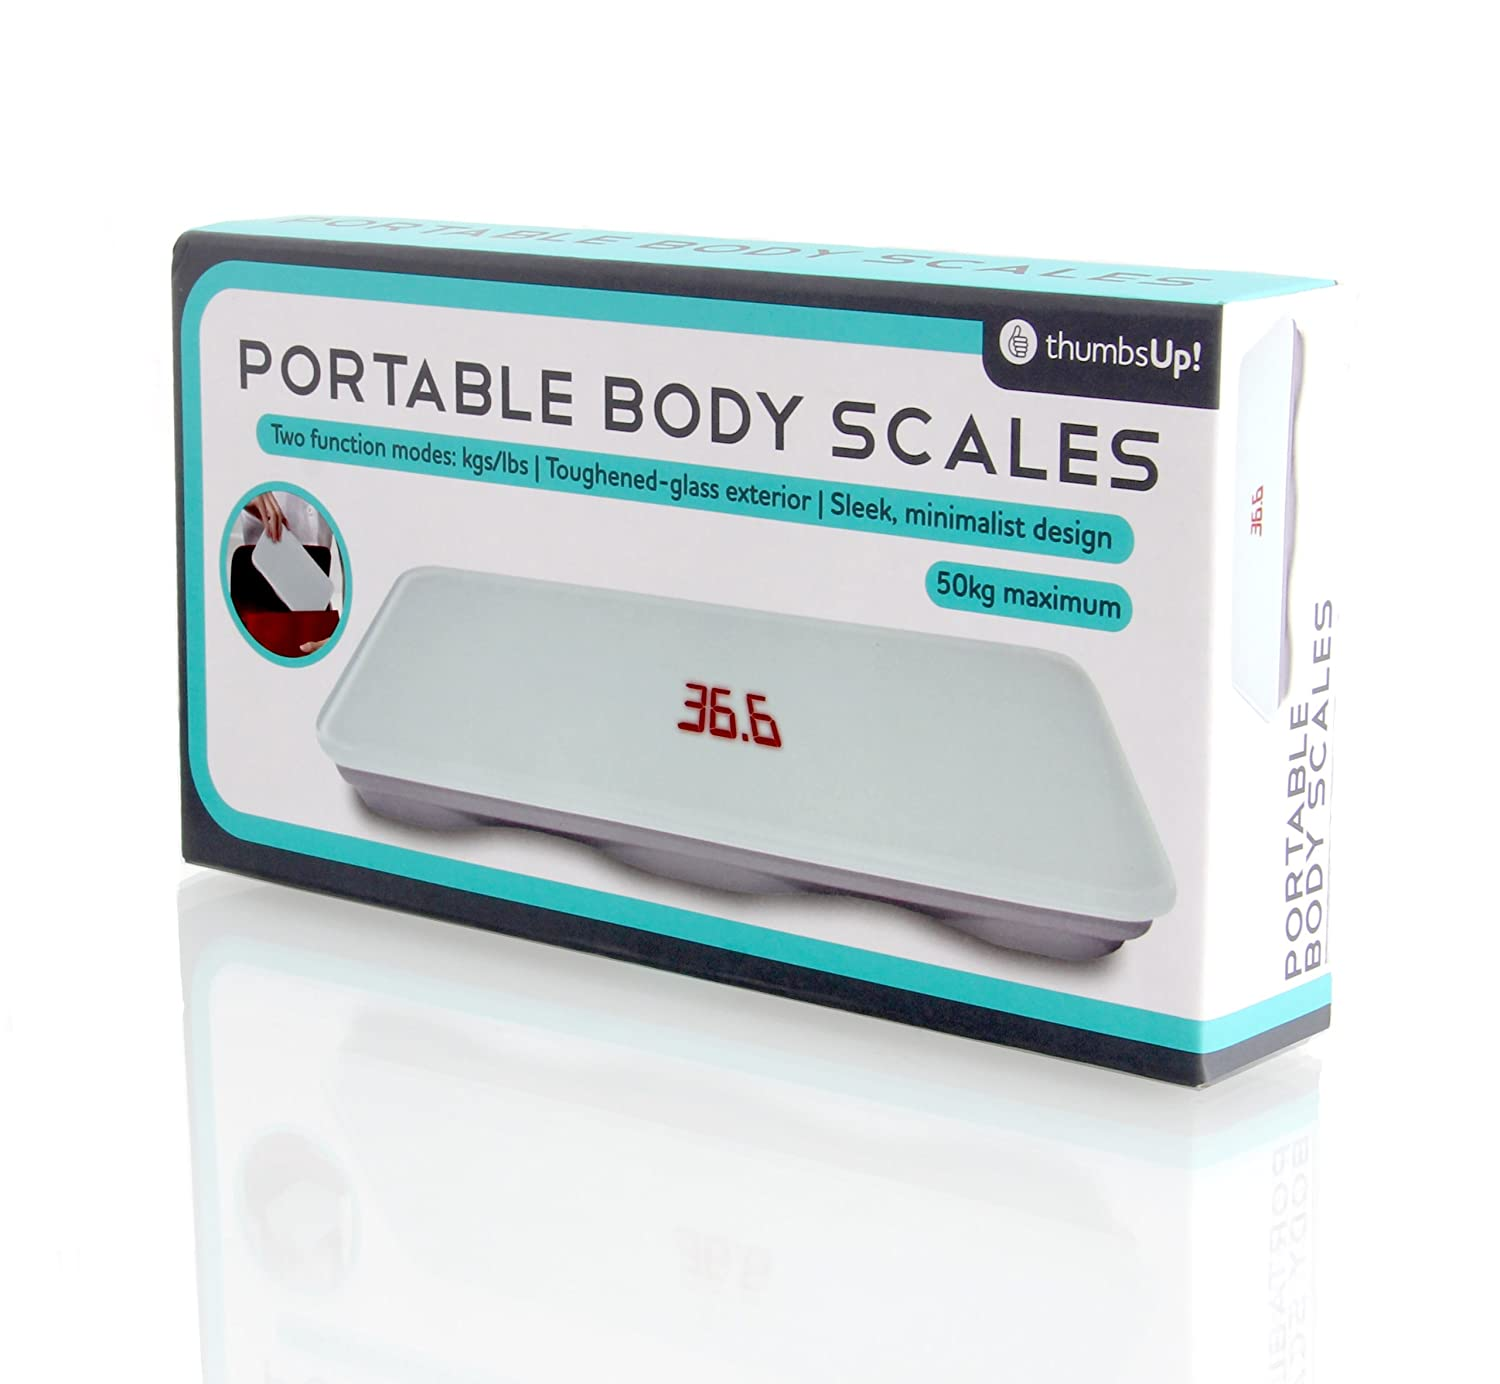 Amazon.com: Thumbs Up! Portable Body Scales: Home & Kitchen